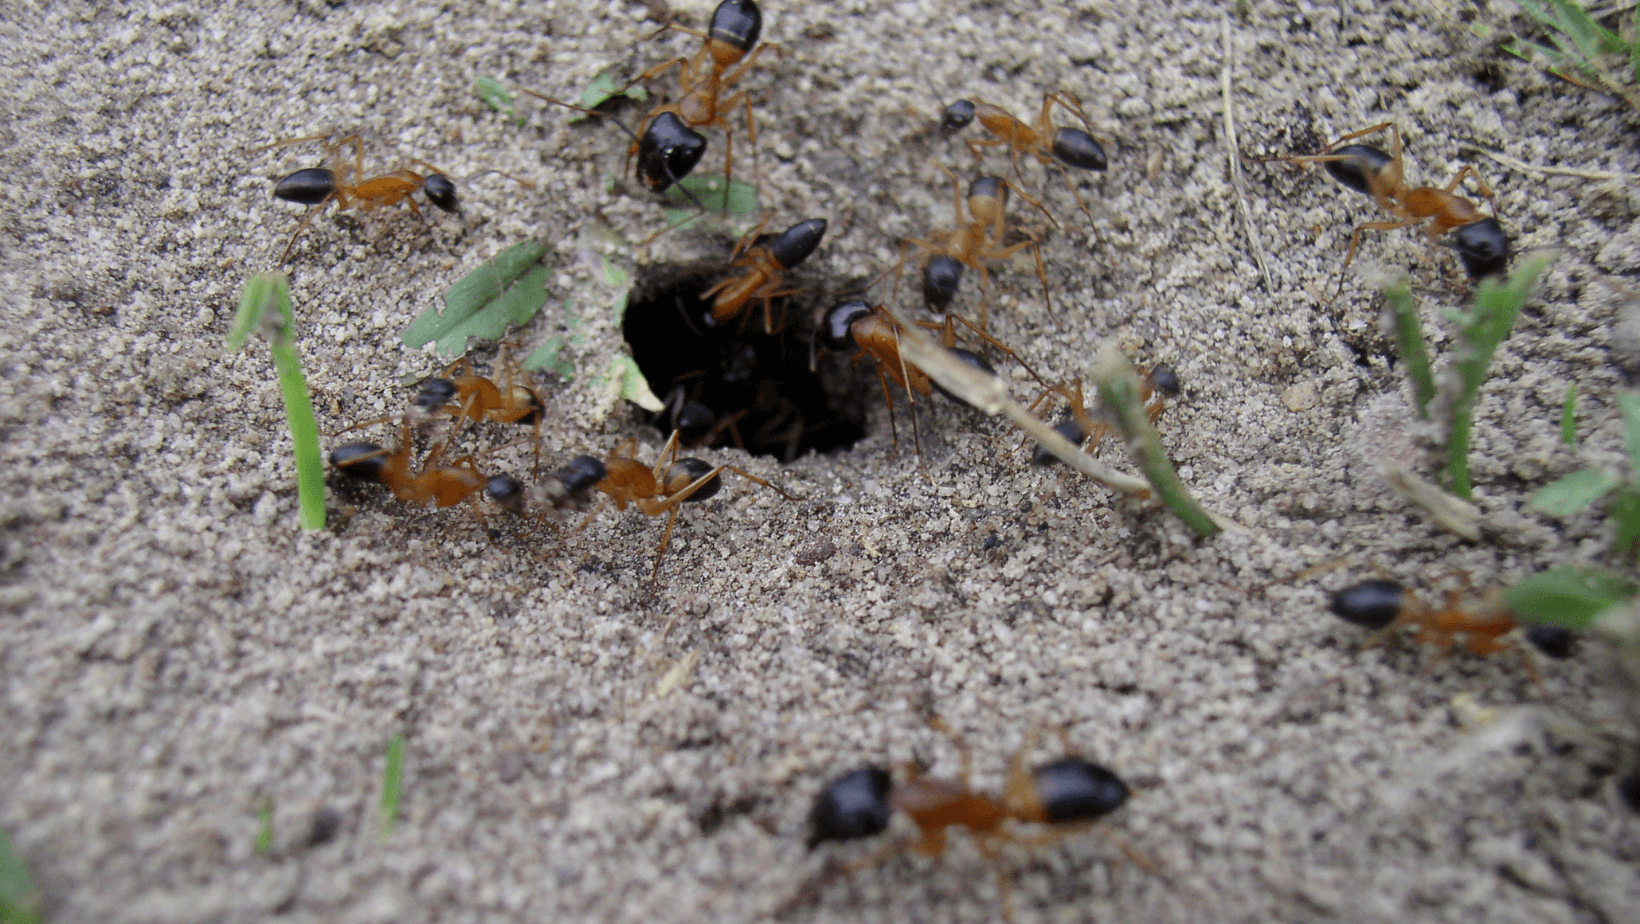 image of fire ants in their mound.